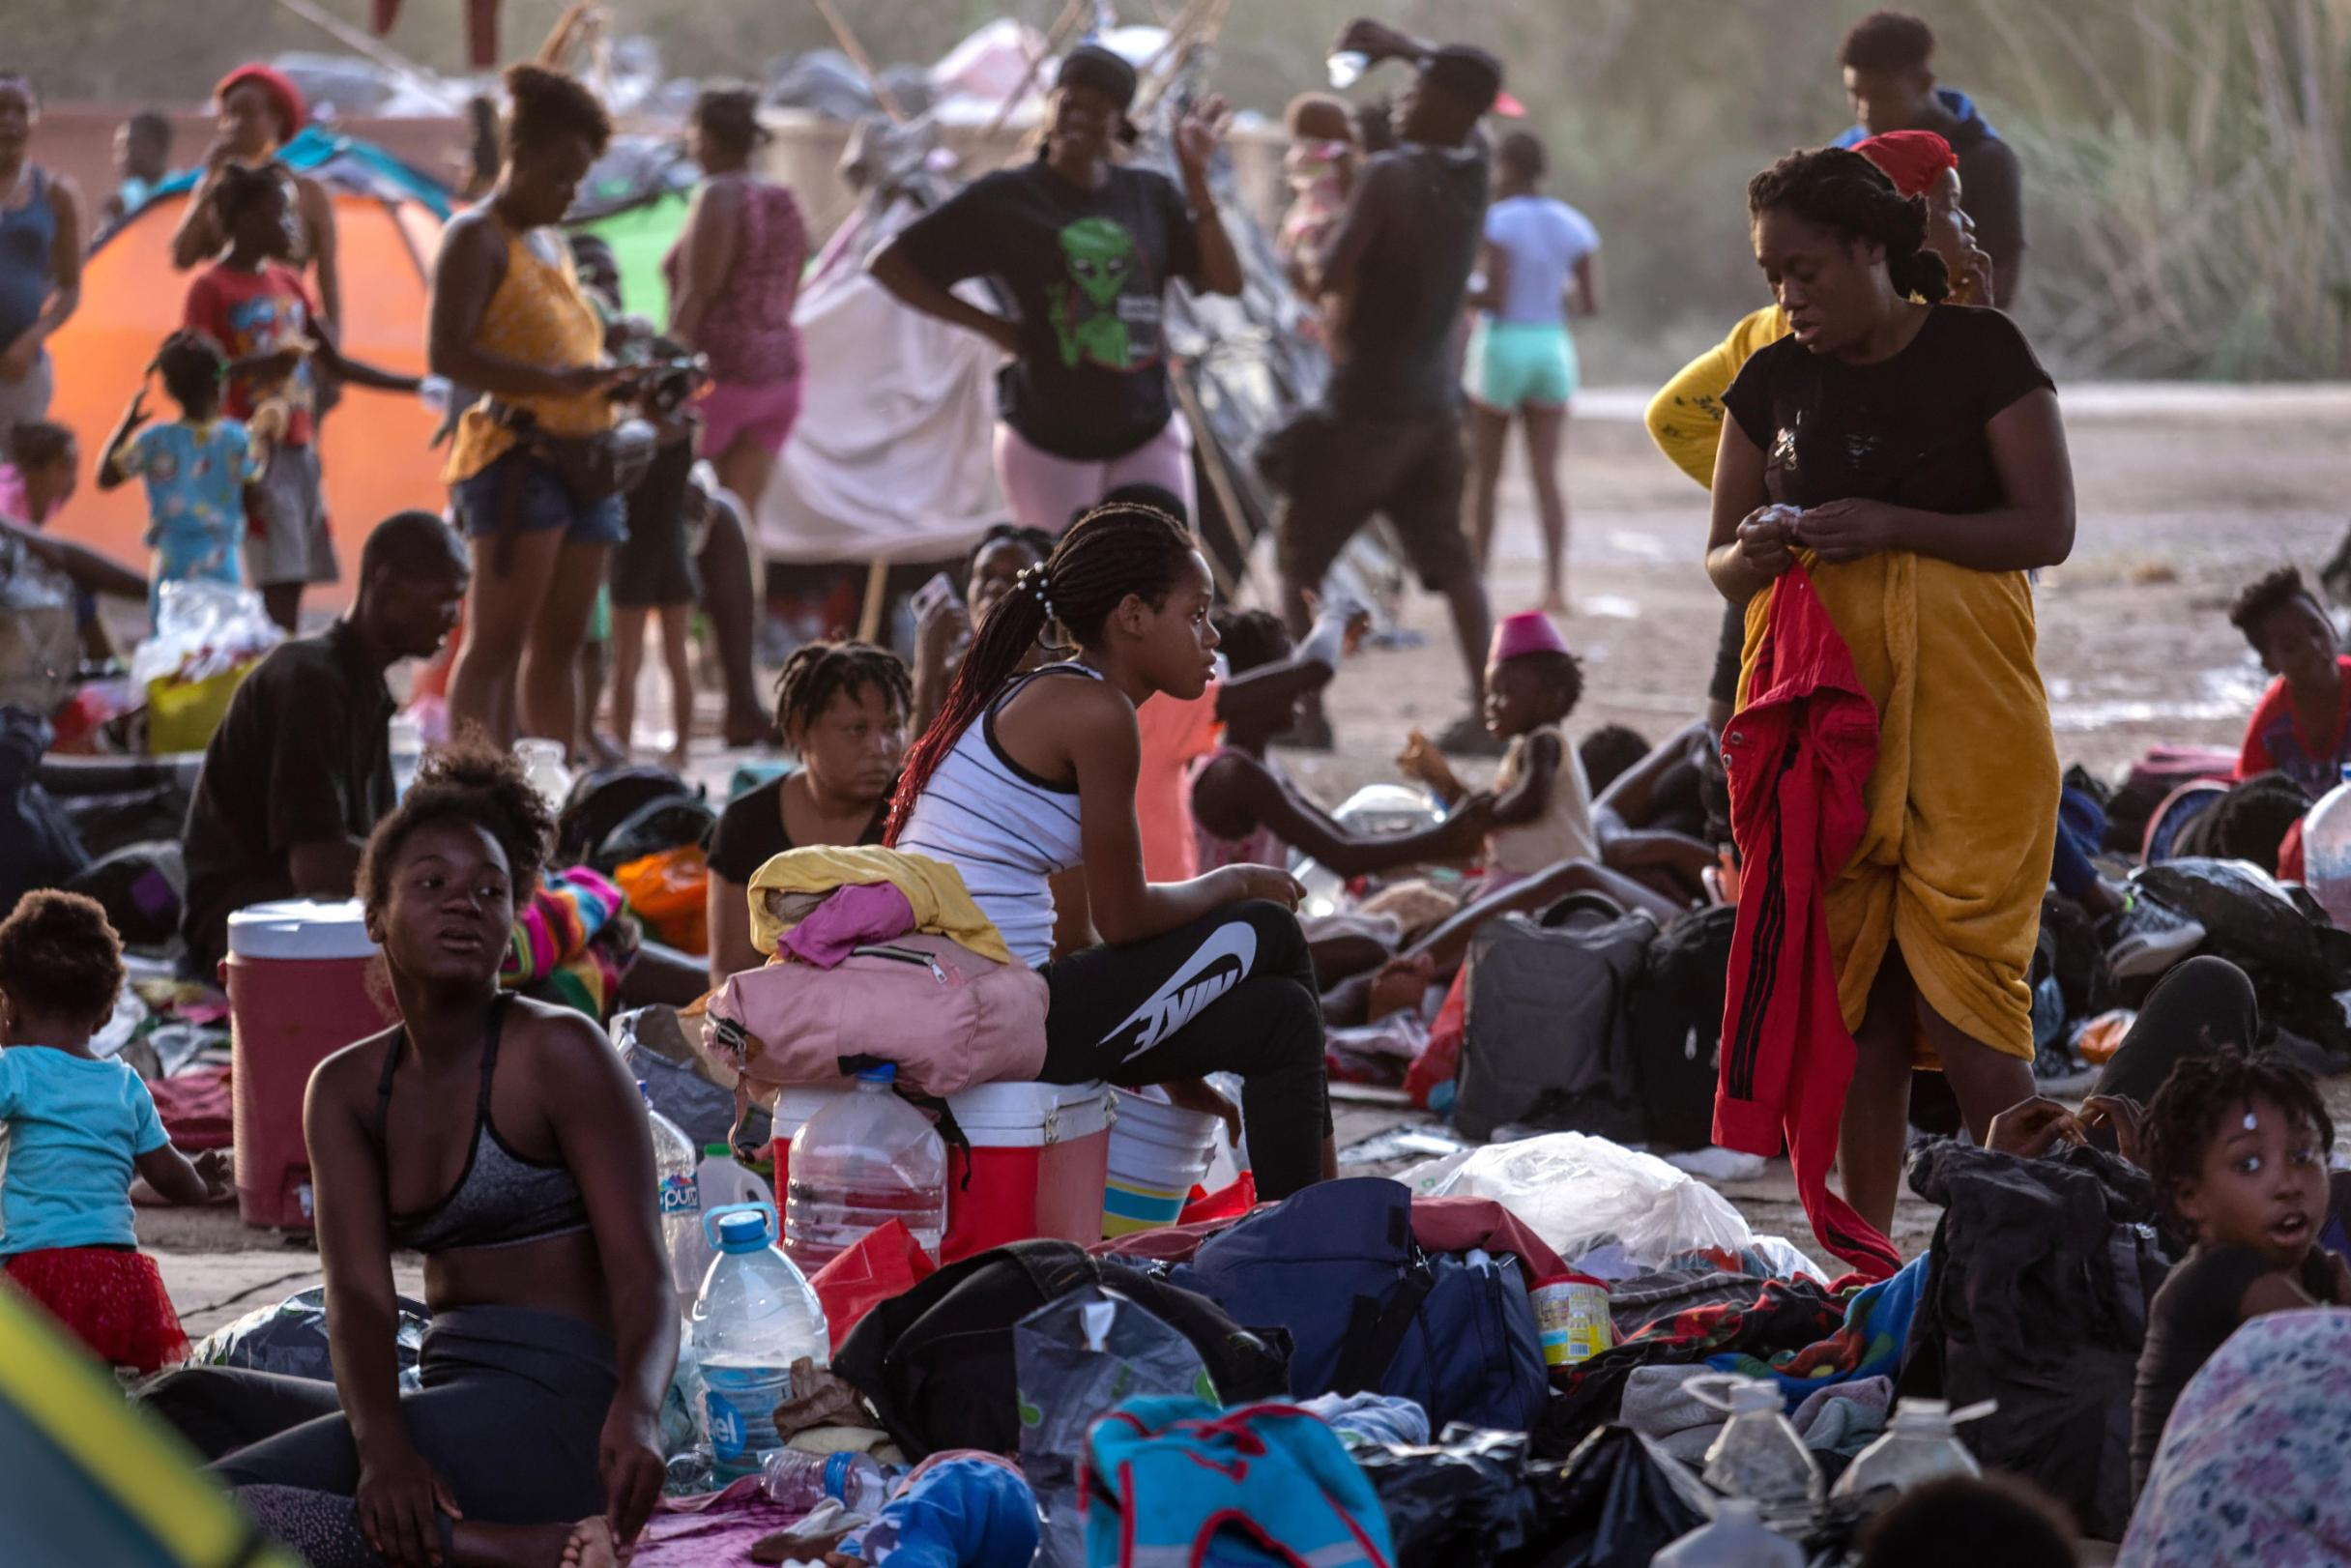 Last Haitian migrants depart Del Rio; 1,800 being processed in El Paso, 350 to stay at Annunciation House 6